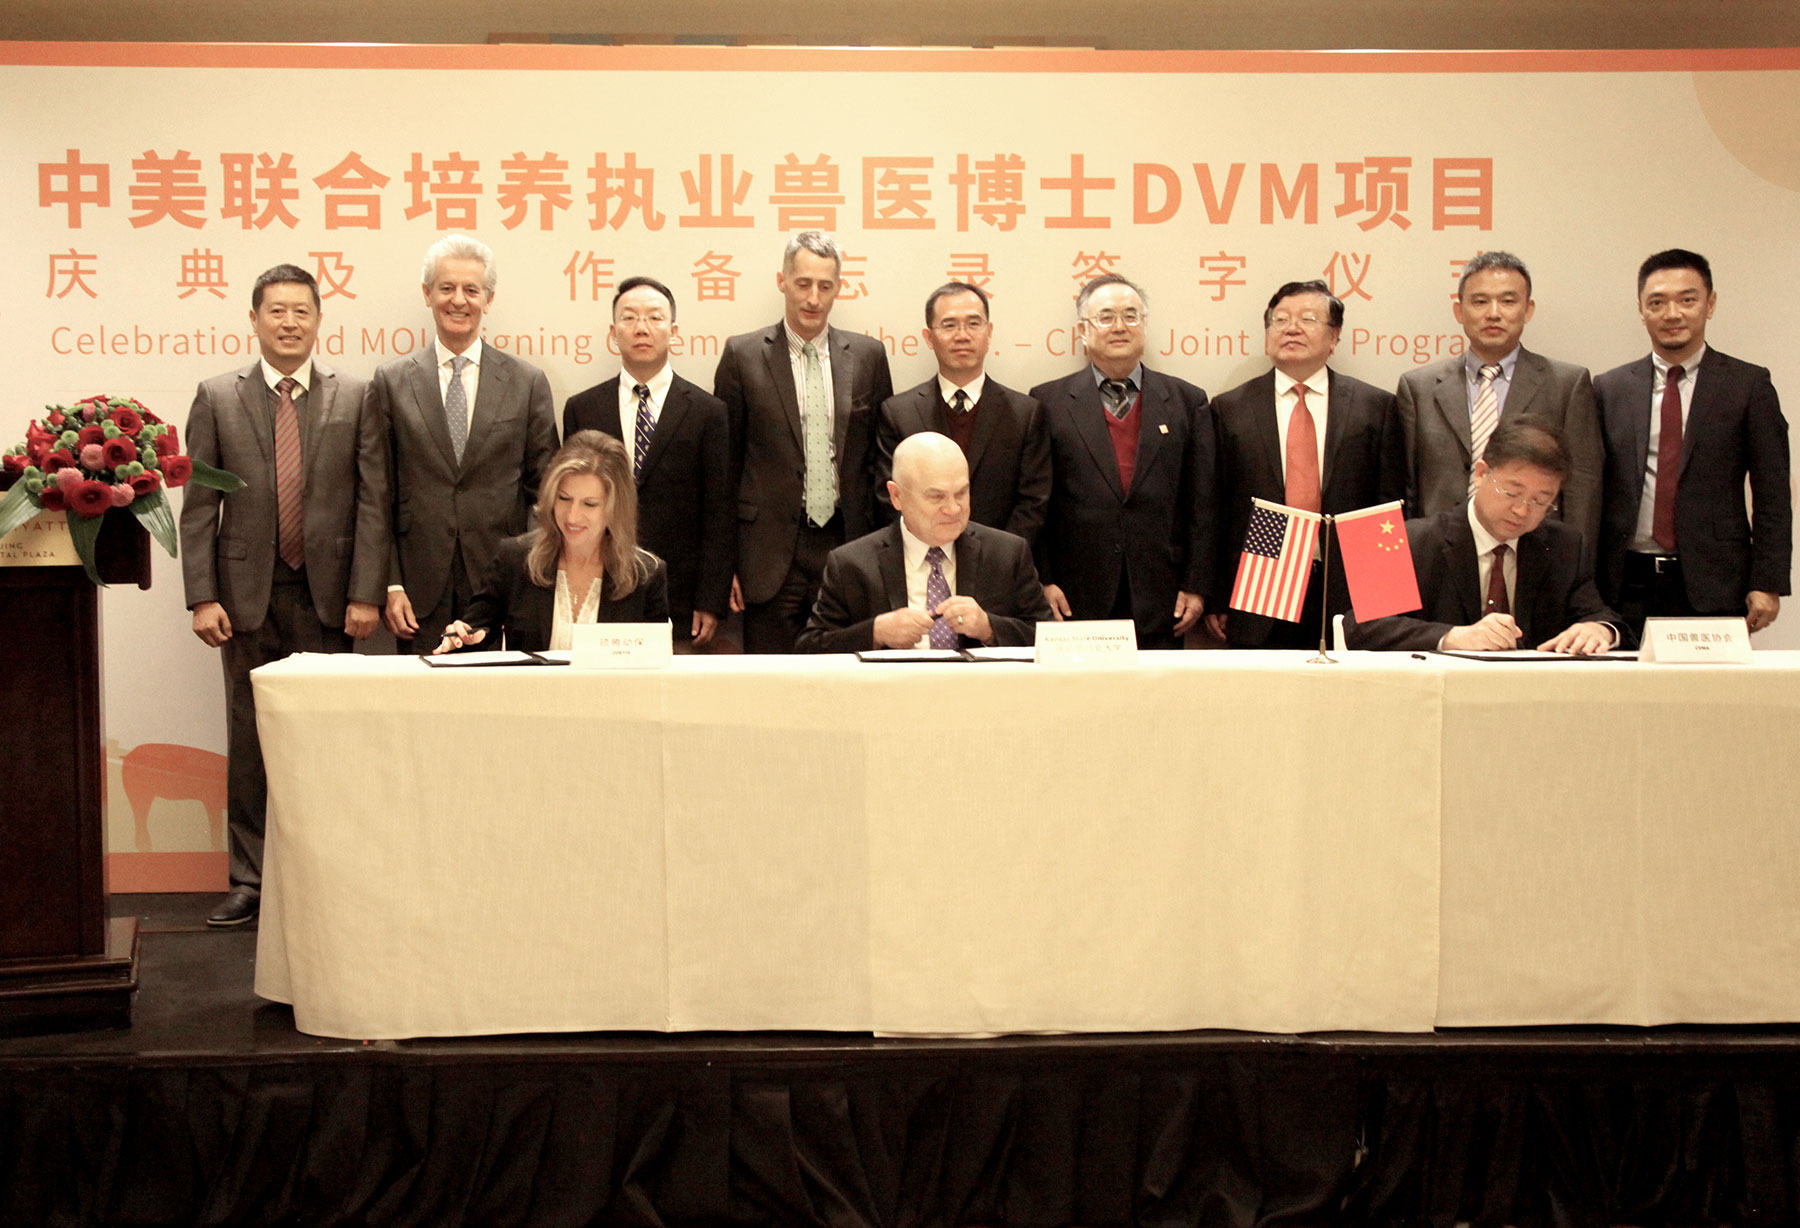 China DVM agreement signing ceremony